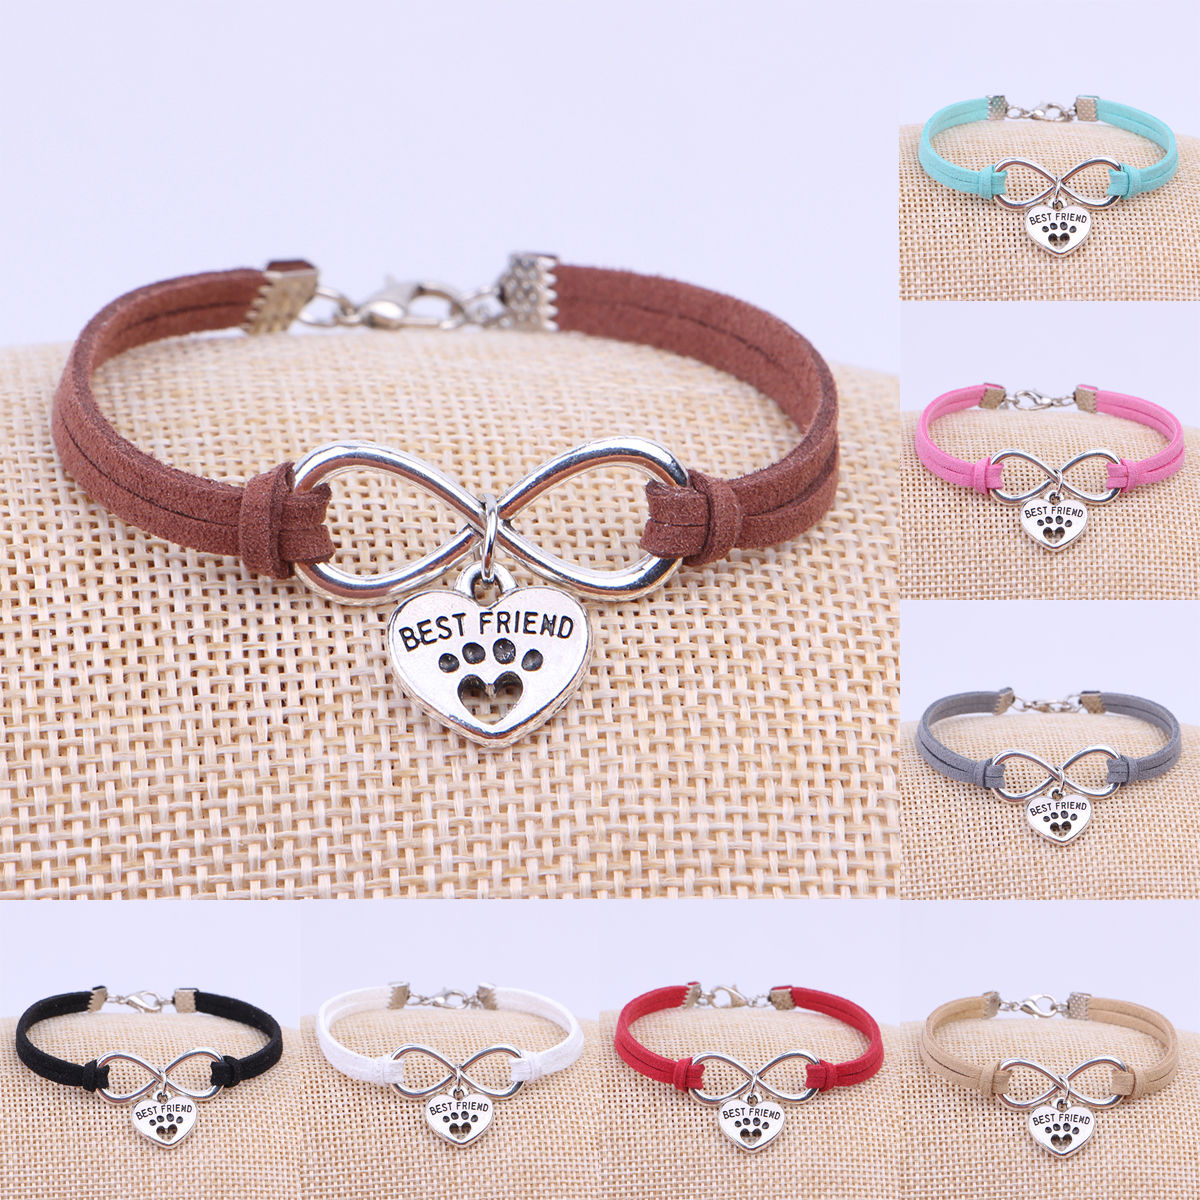 Mixed Color Velvet Leather Infinity Bracelet Bangle Dogs Paw Best Friend Cat Charms Pendant  New Unisex Jewelry Colors To Choose